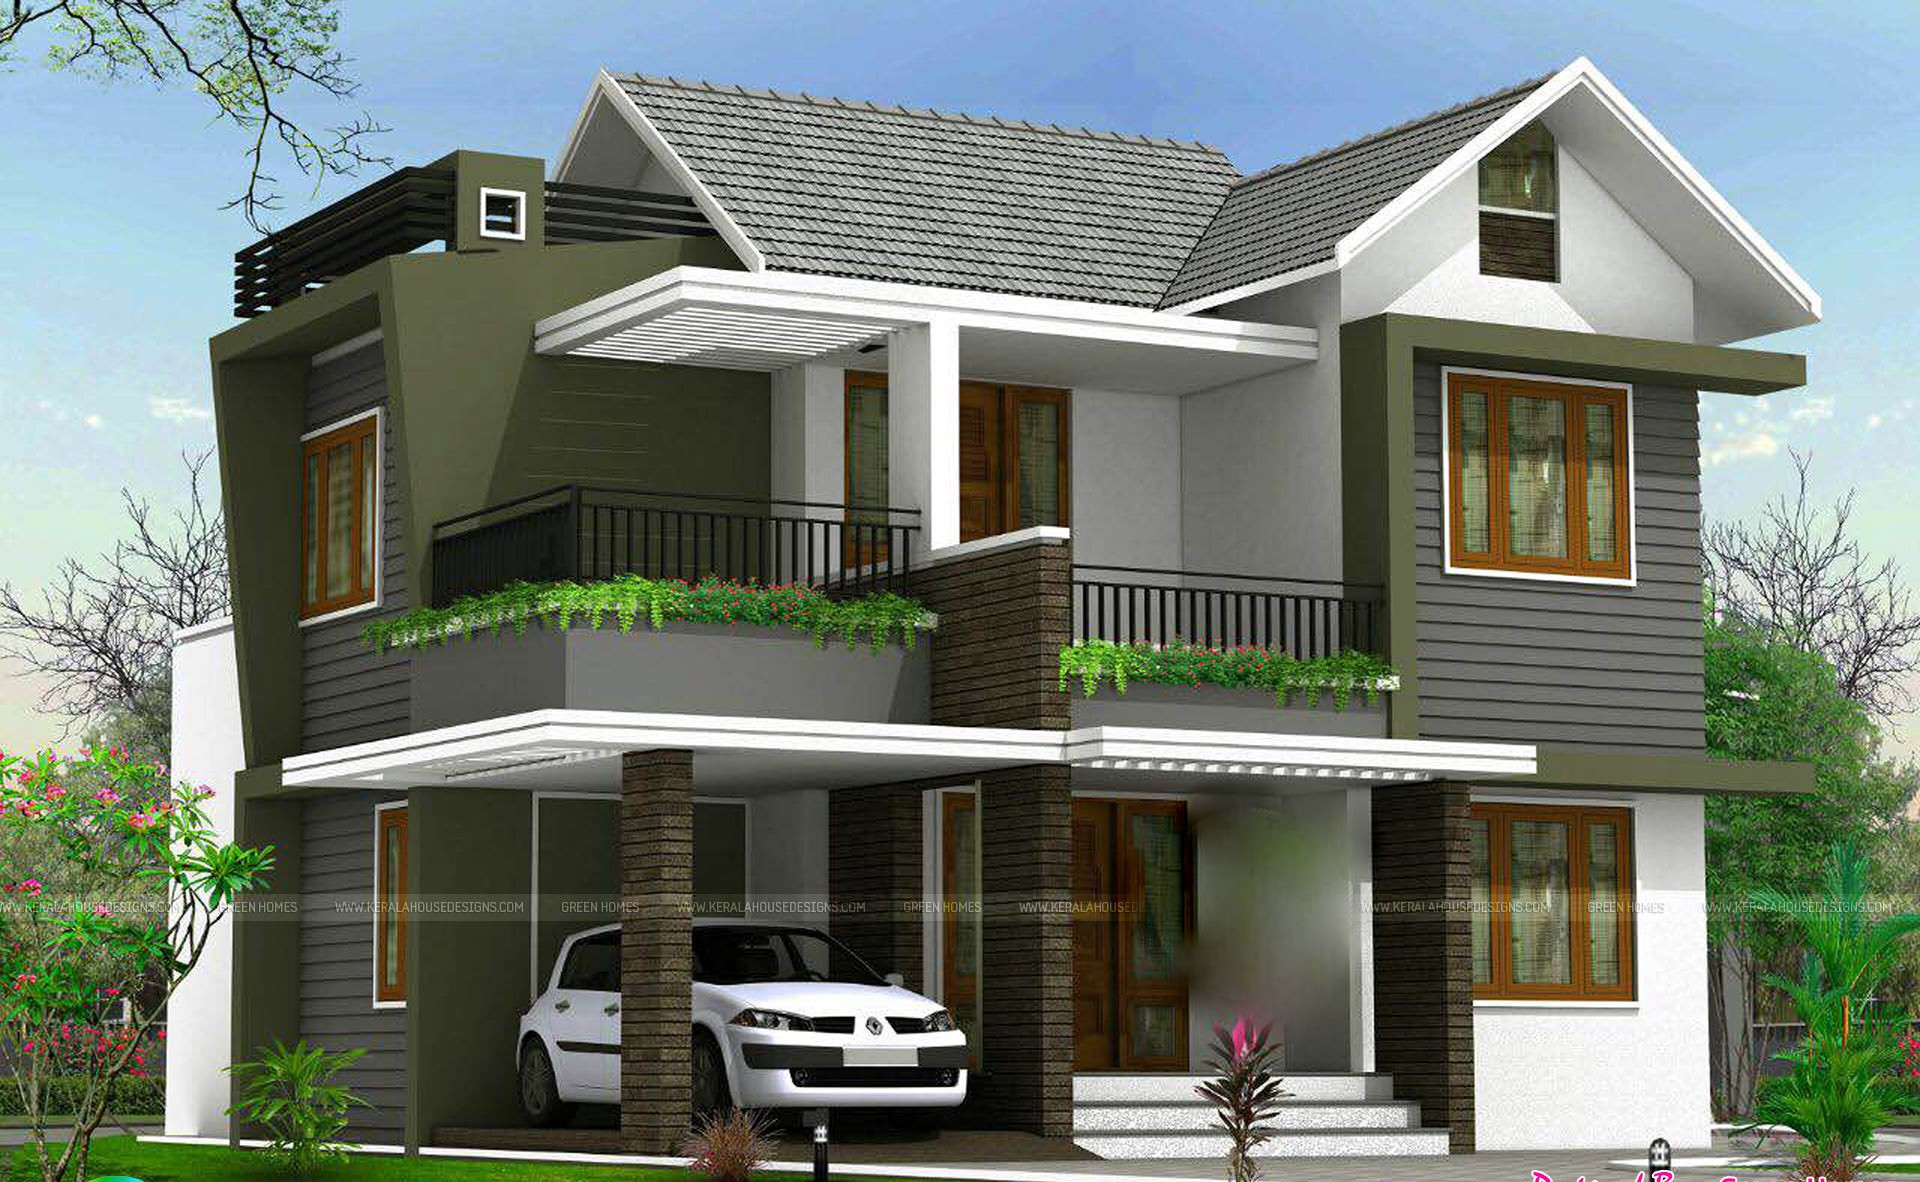 Roof Floor Elevation : Square feet bedroom double floor sloping roof home